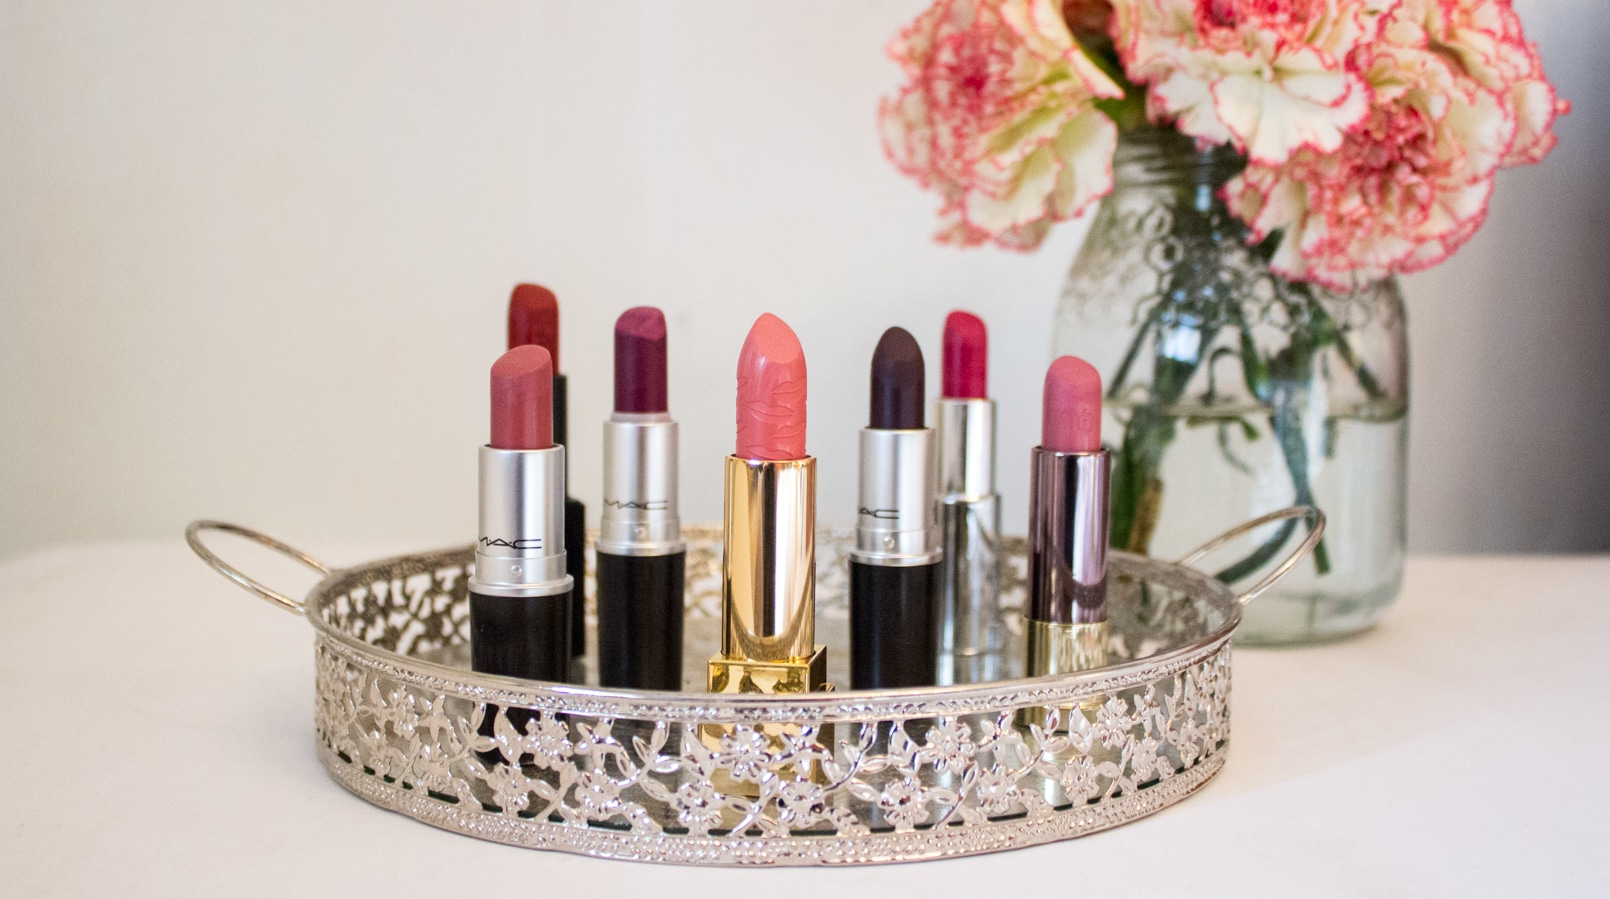 Le Fashionaire 7 lipsticks for Fall ysl urban decay mac fast play givenchy nars olivia instigator lipstick 4749F EN